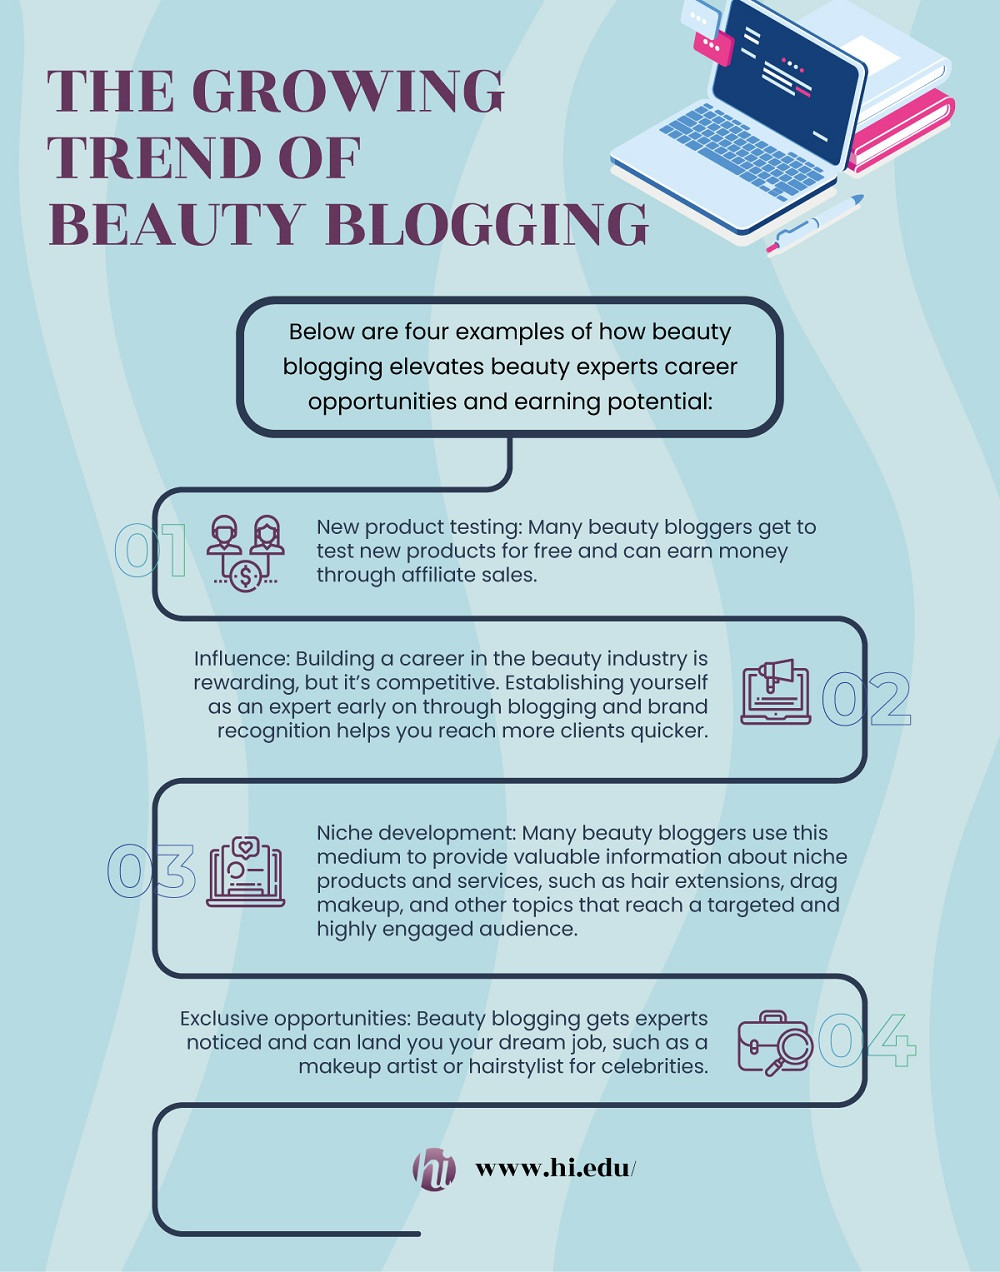 The Growing Trend of Beauty Blogging